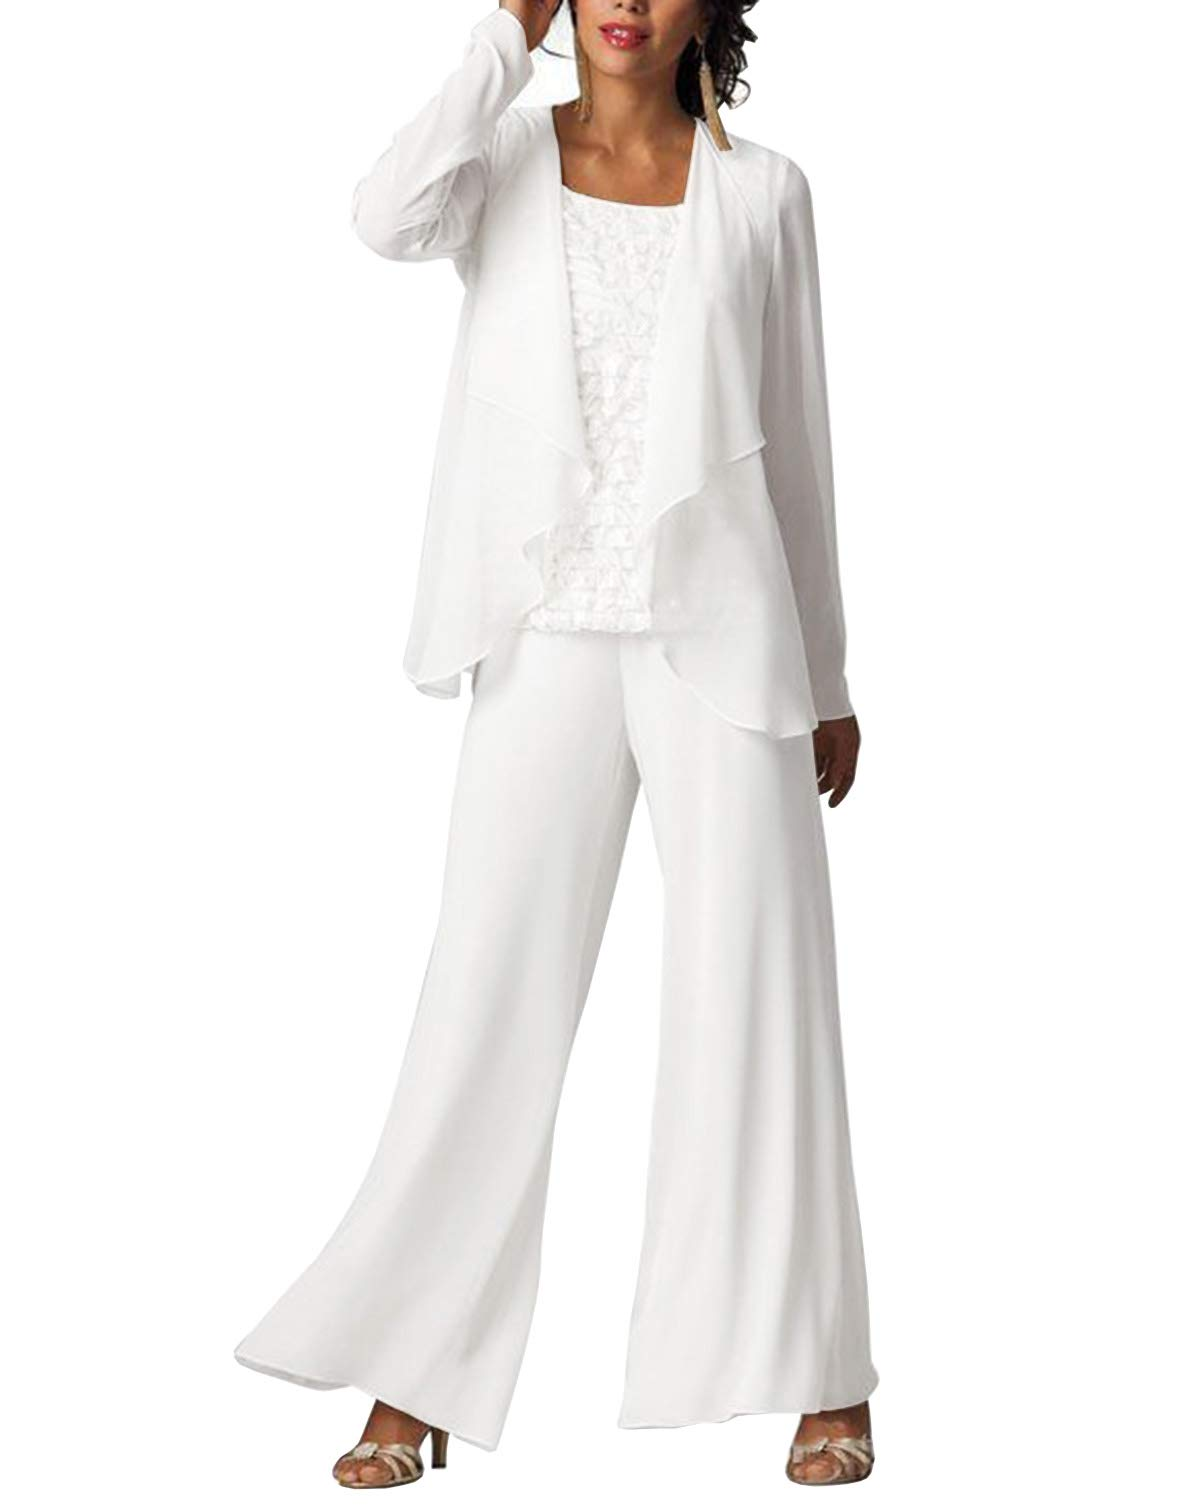 enjoy big discount cheap price various styles Women's Mother of Bride Dress Outfits Pant Suits Elegant Formal Chiffon  Plus Size 3 Pieces for Wedding(US20Plus,White)